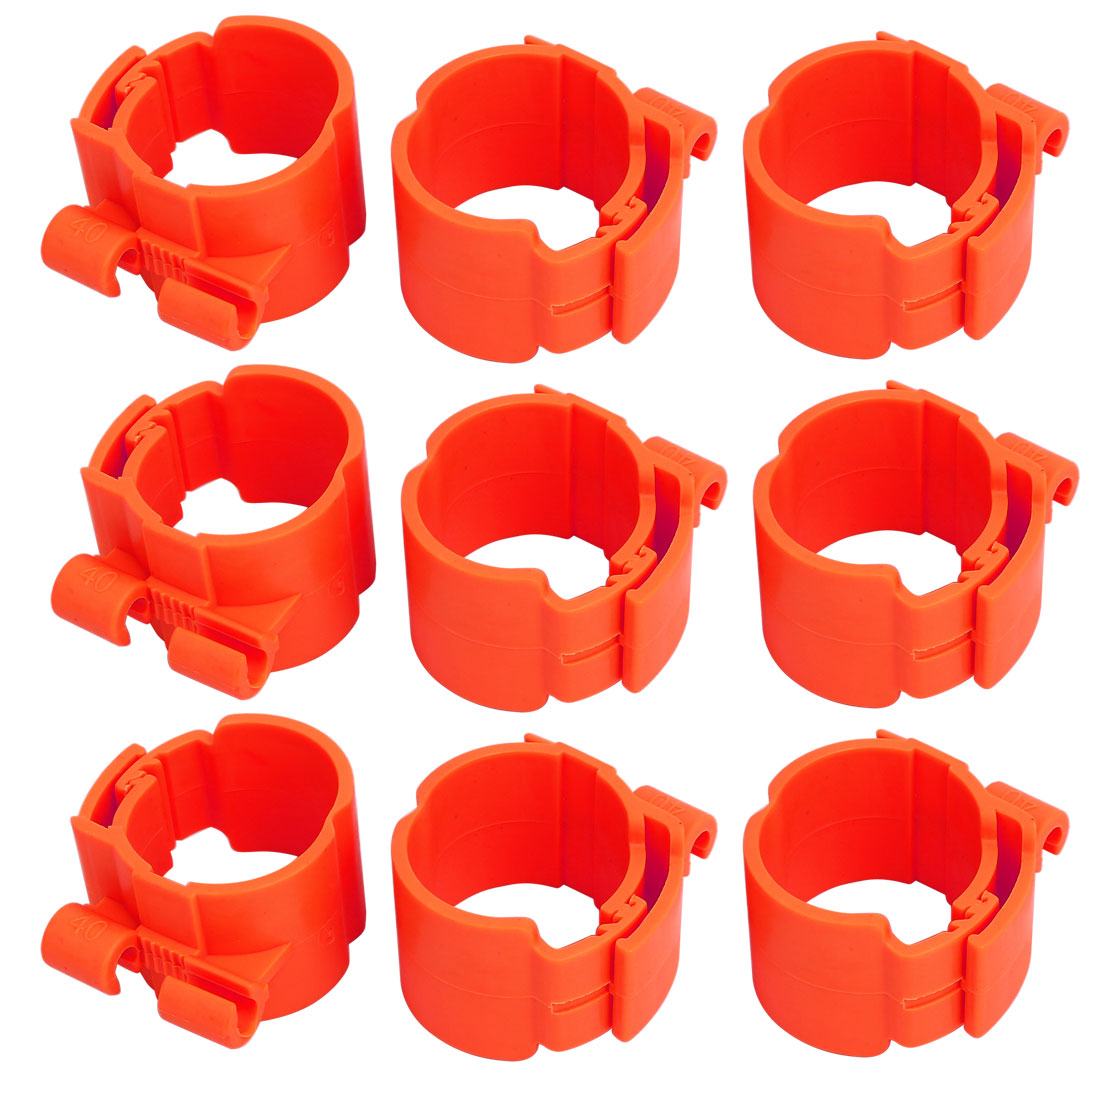 40mm Dia 35mm Width Central Air Conditioner Pipe Clip Clamp Red 9pcs